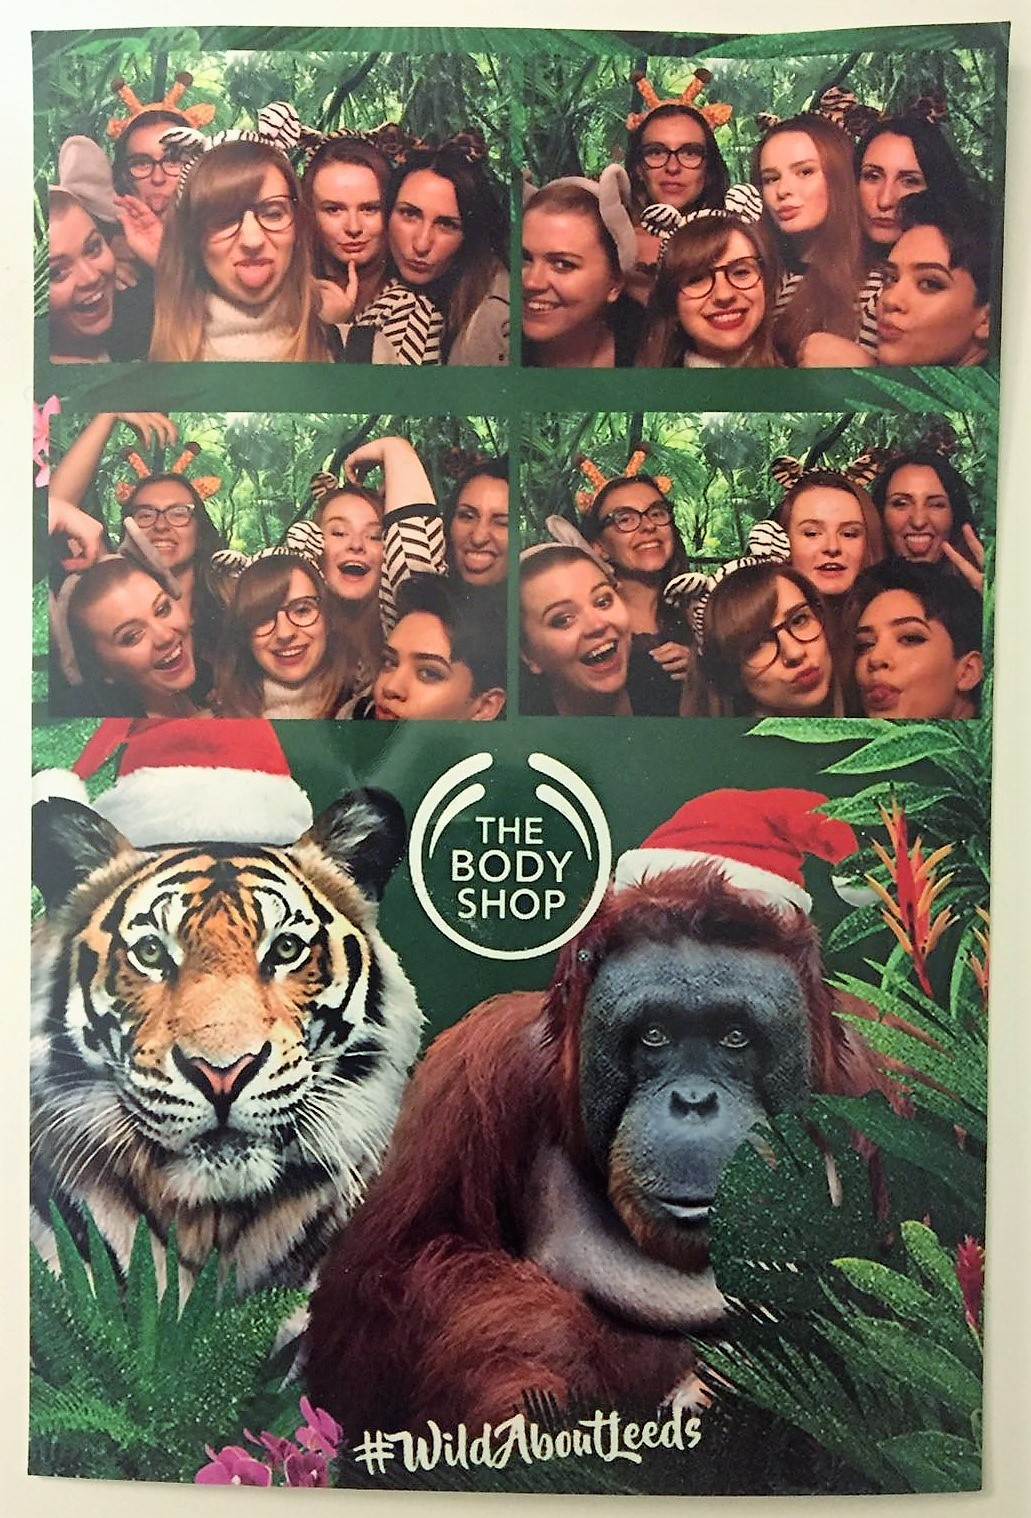 Leeds Bloggers at The Body Shop